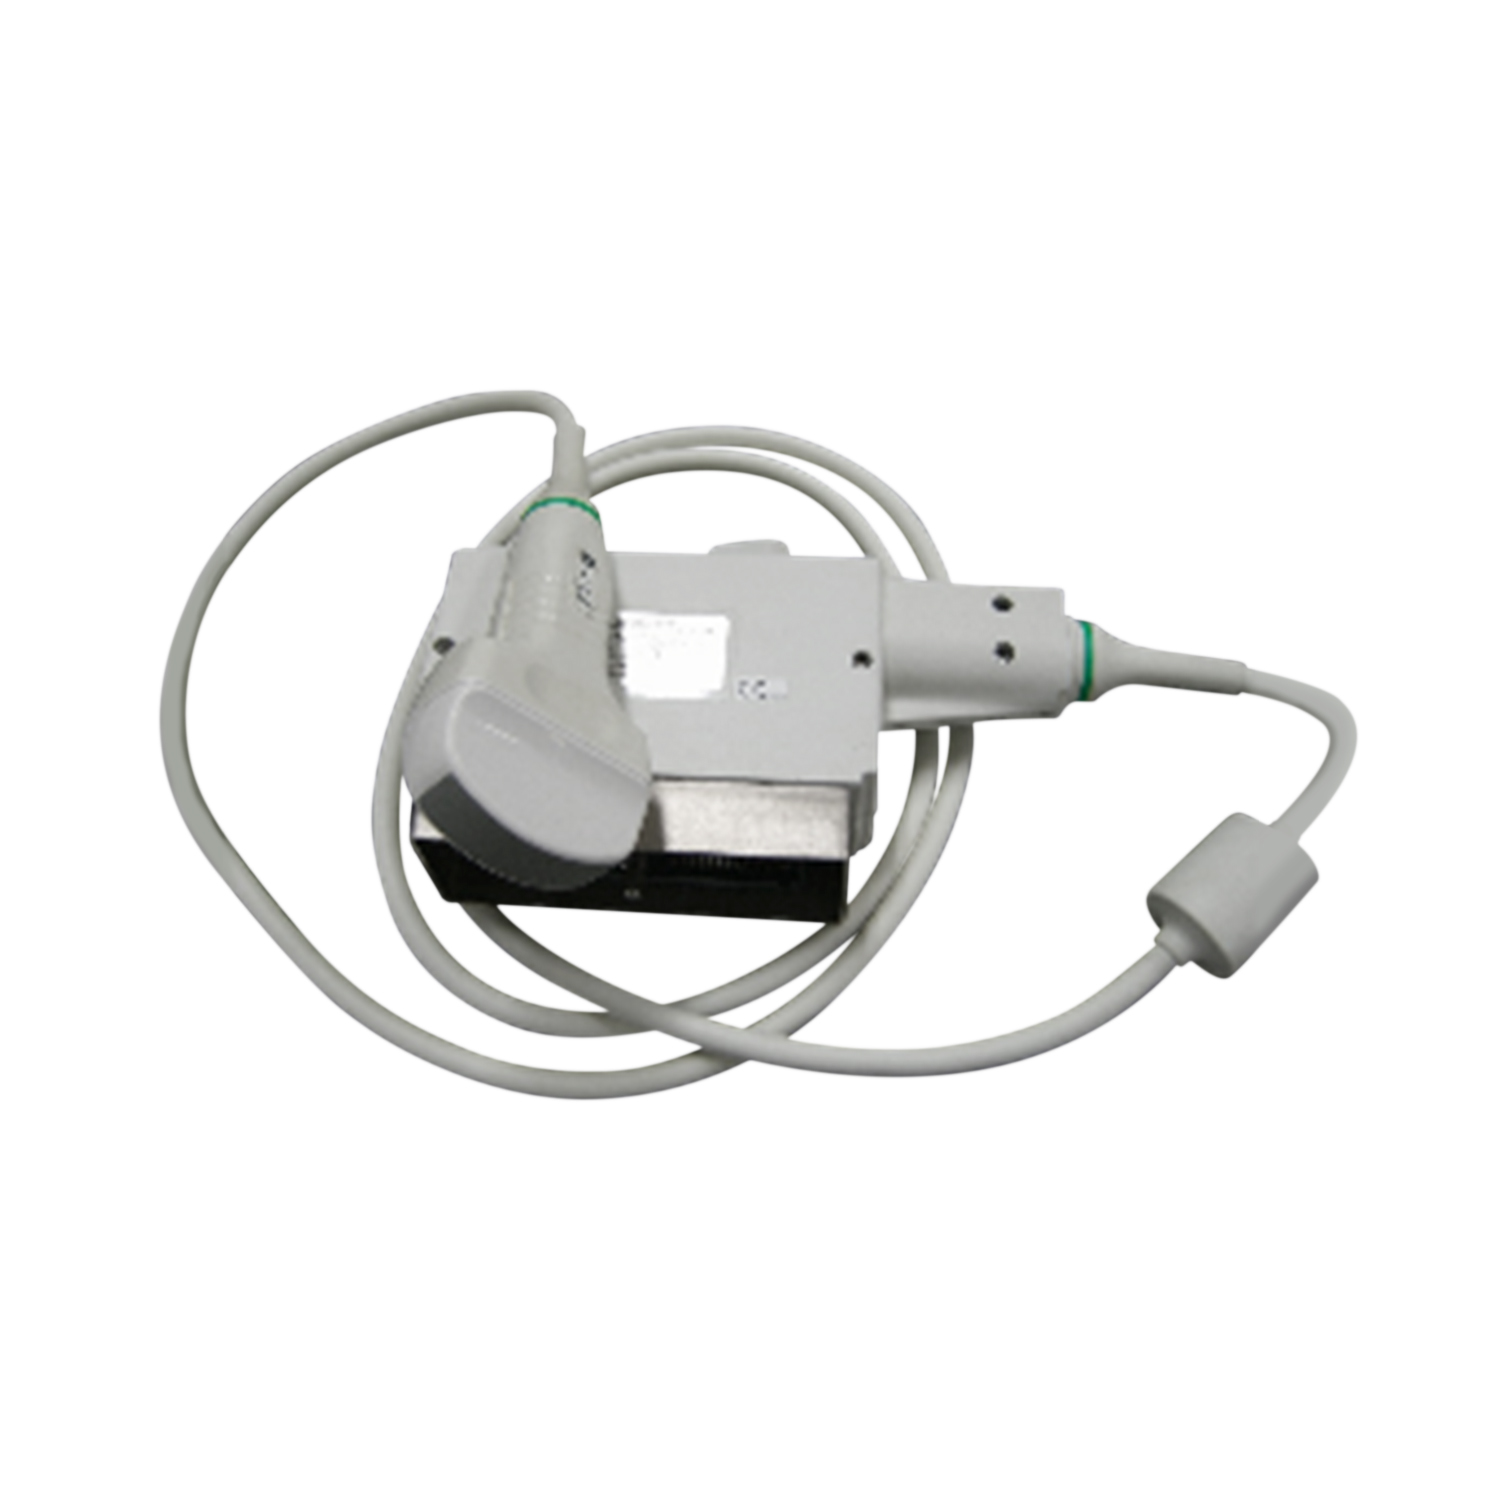 GE 3.5CS Ultrasound Probe